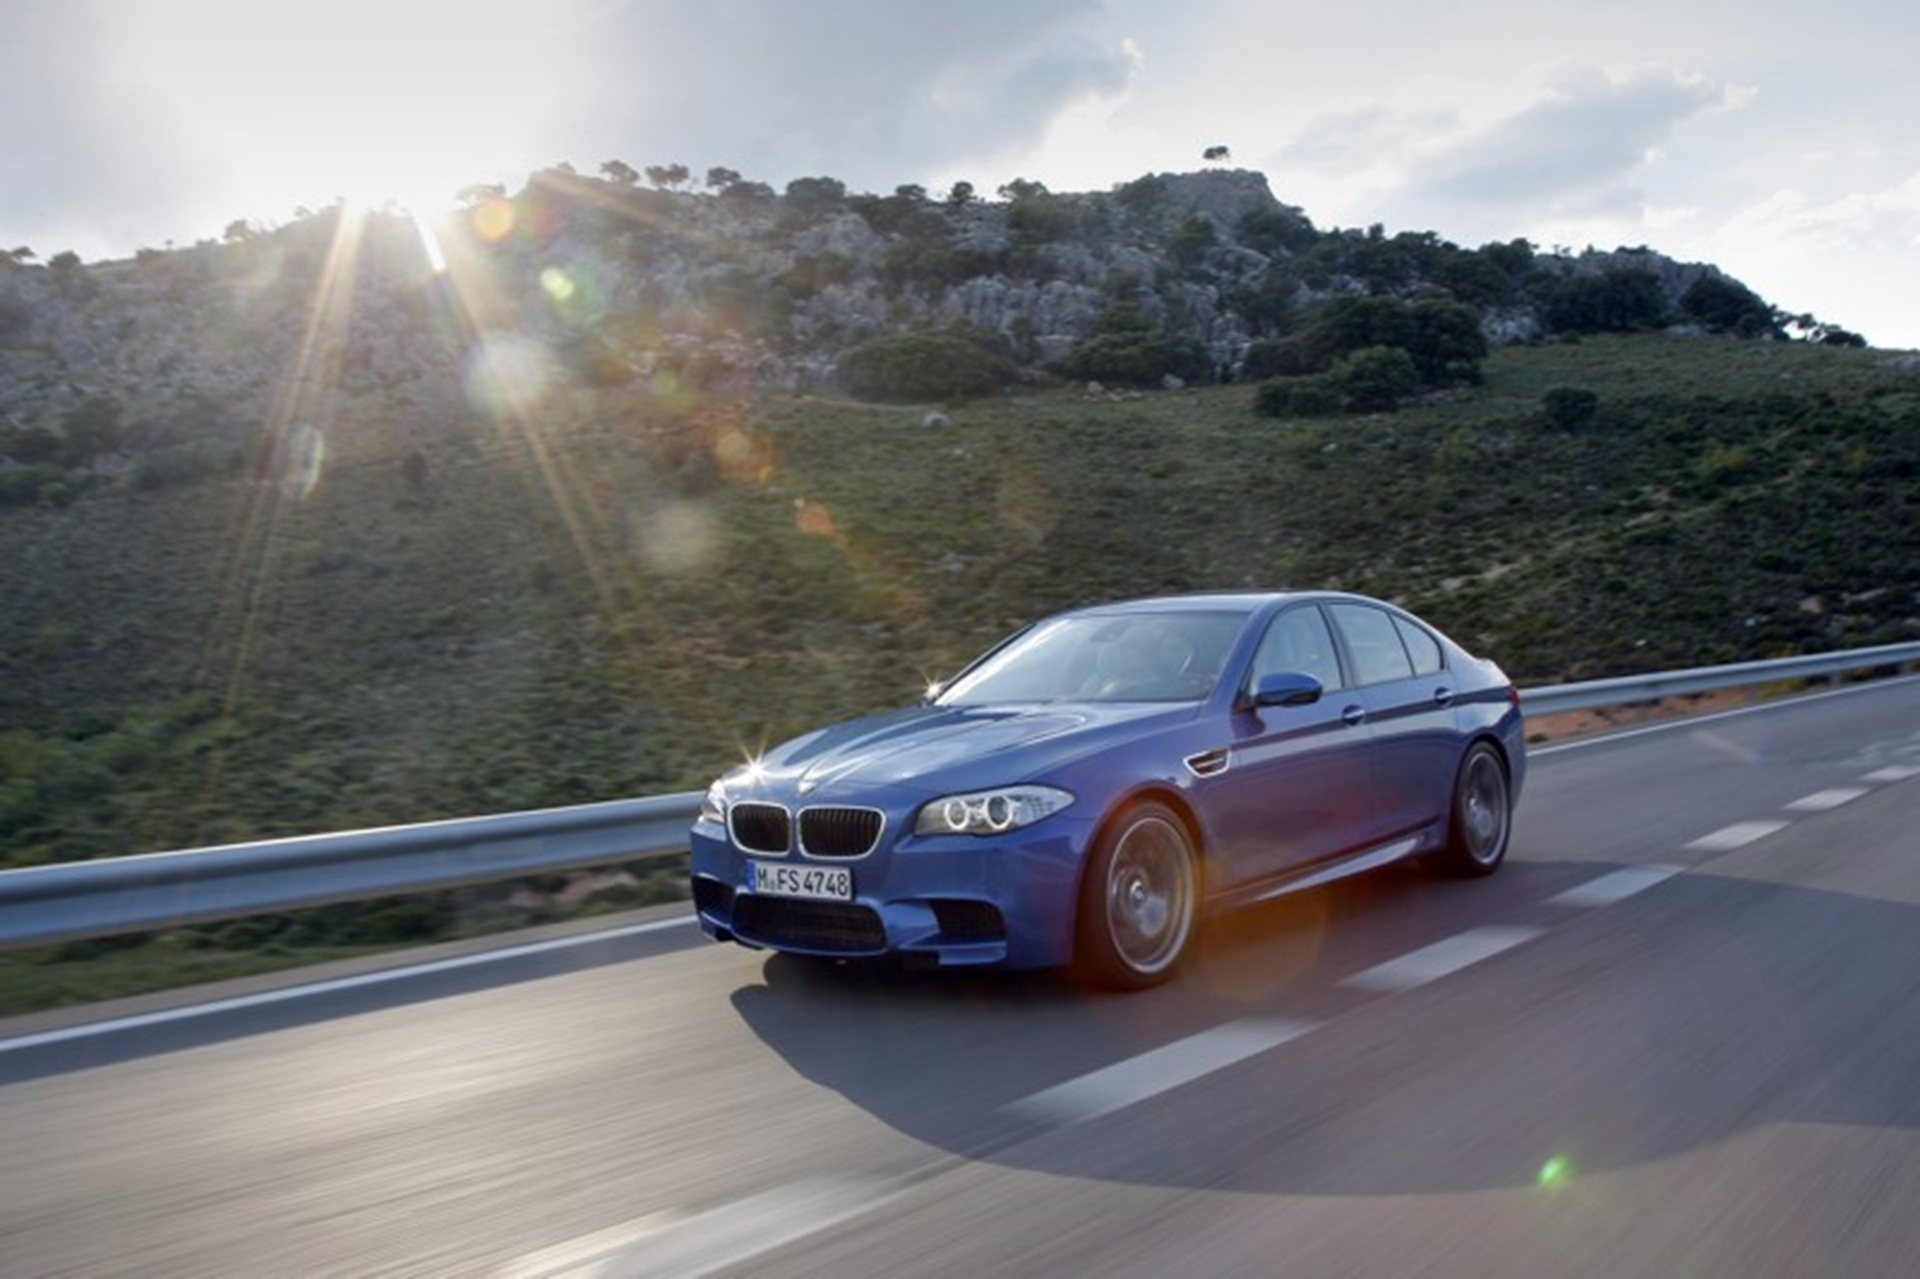 BMW M5 on the road